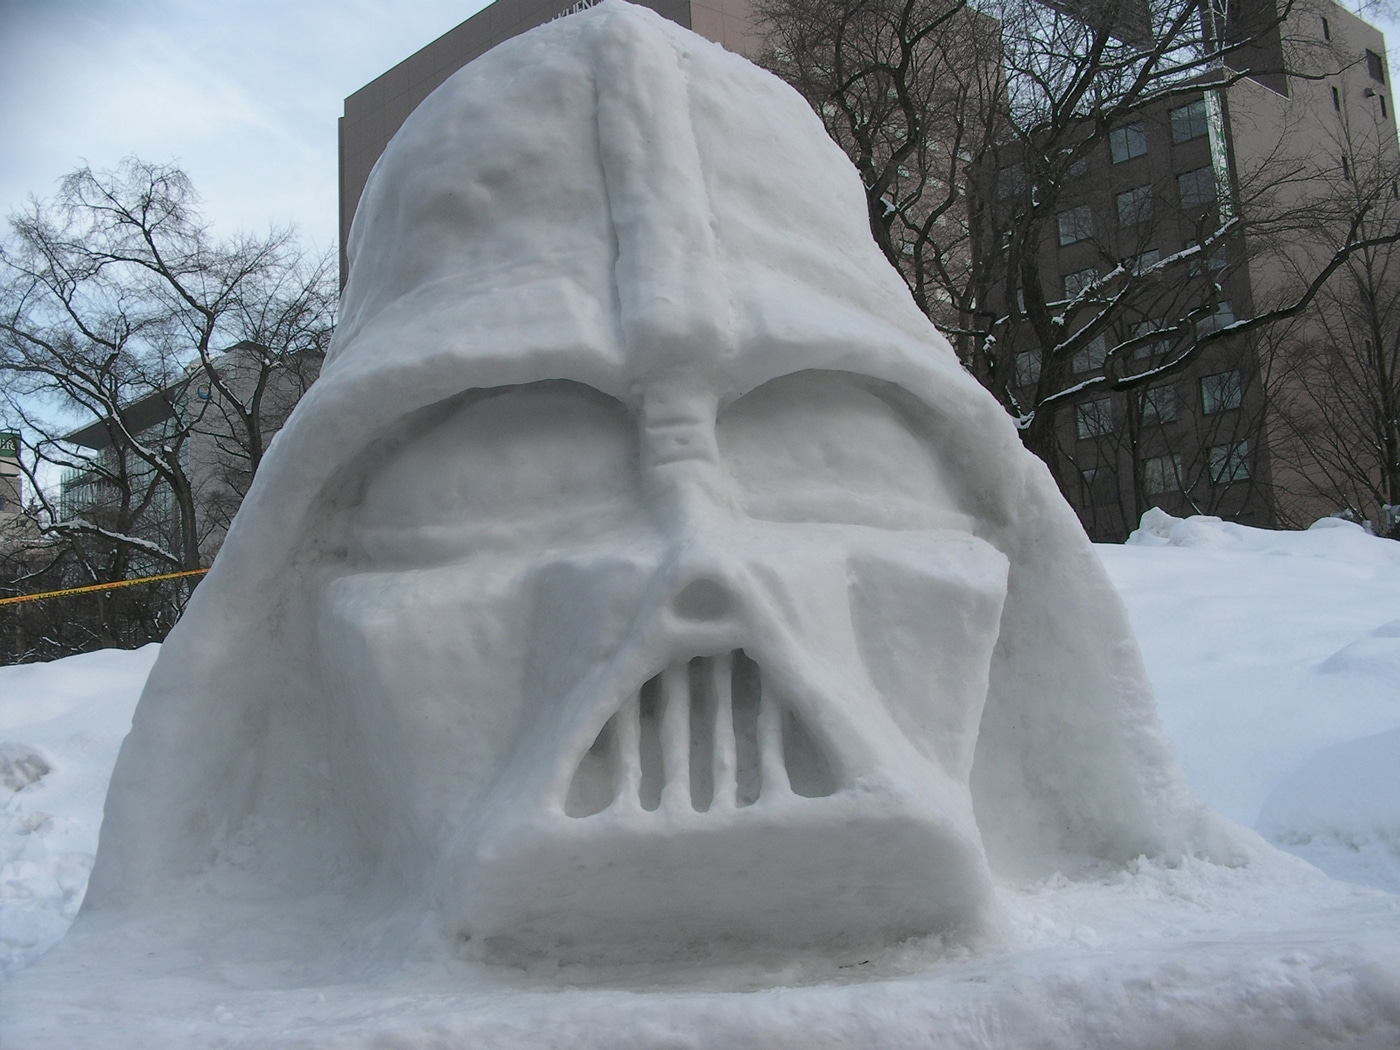 Star Wars Snow Sculptures To Inspire You [15 Pics]